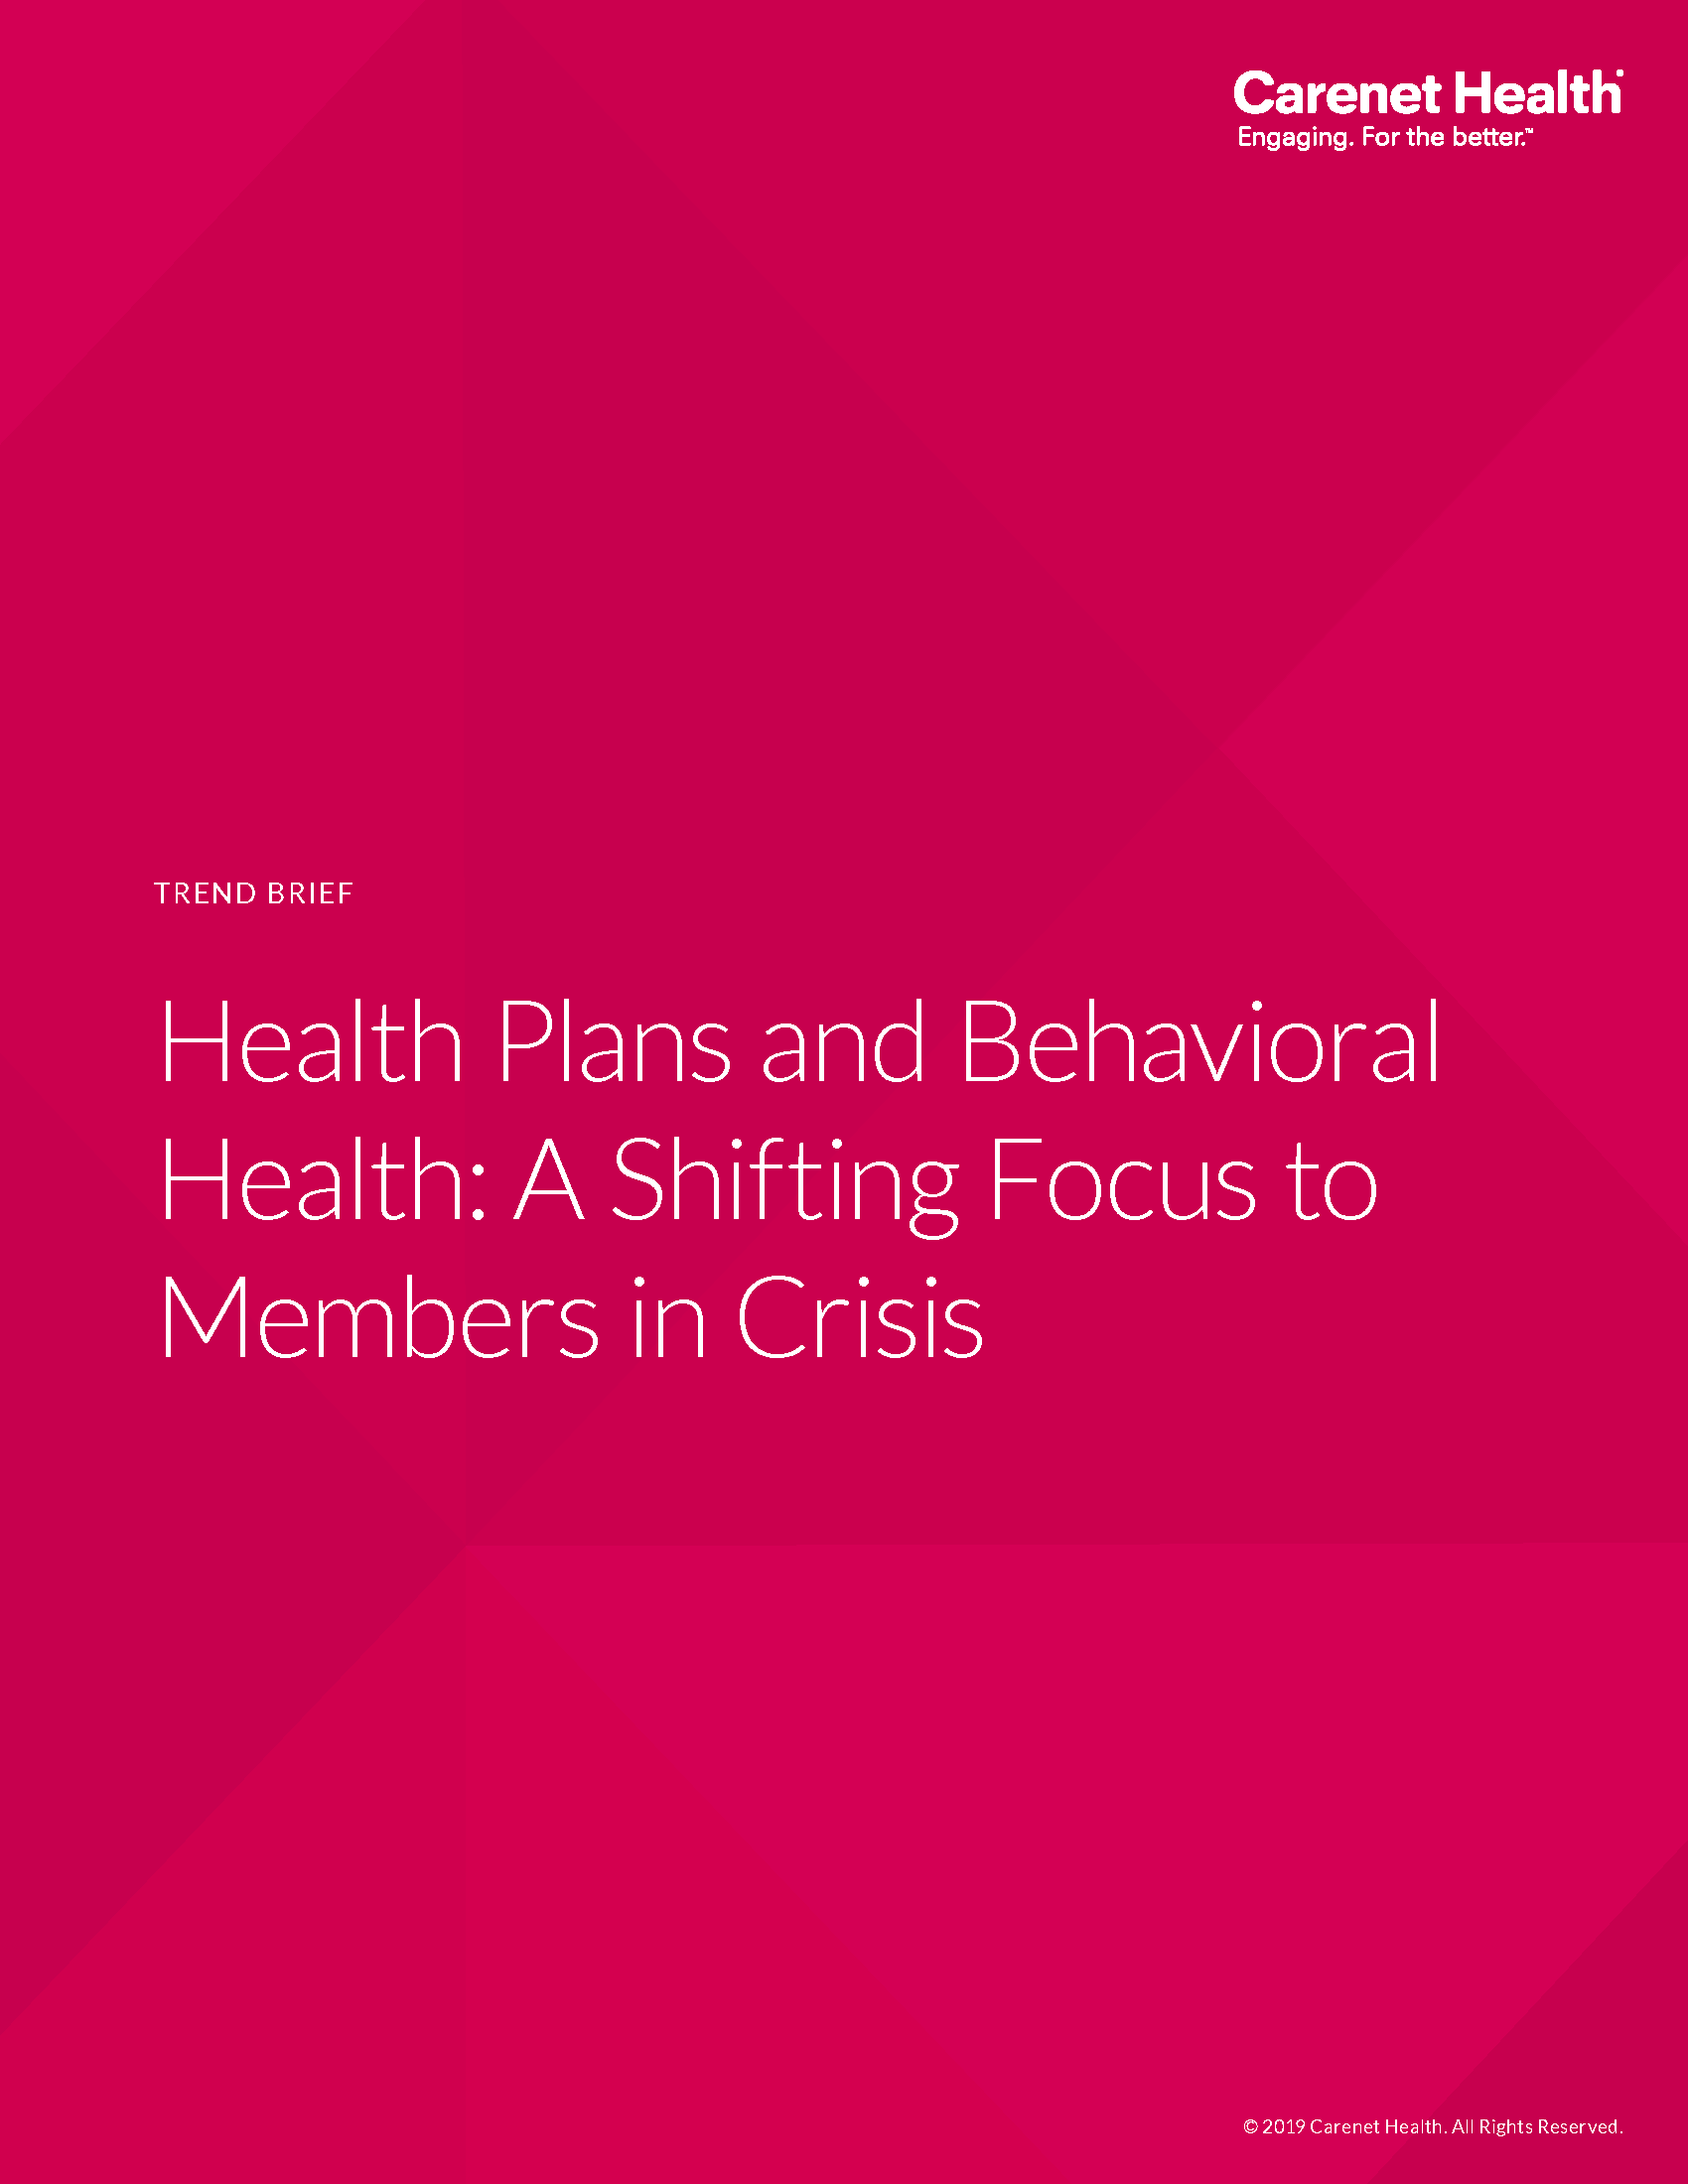 Trend Brief on Health Plans and Behavioral Health: A Shifting Focus to Members in Crisis